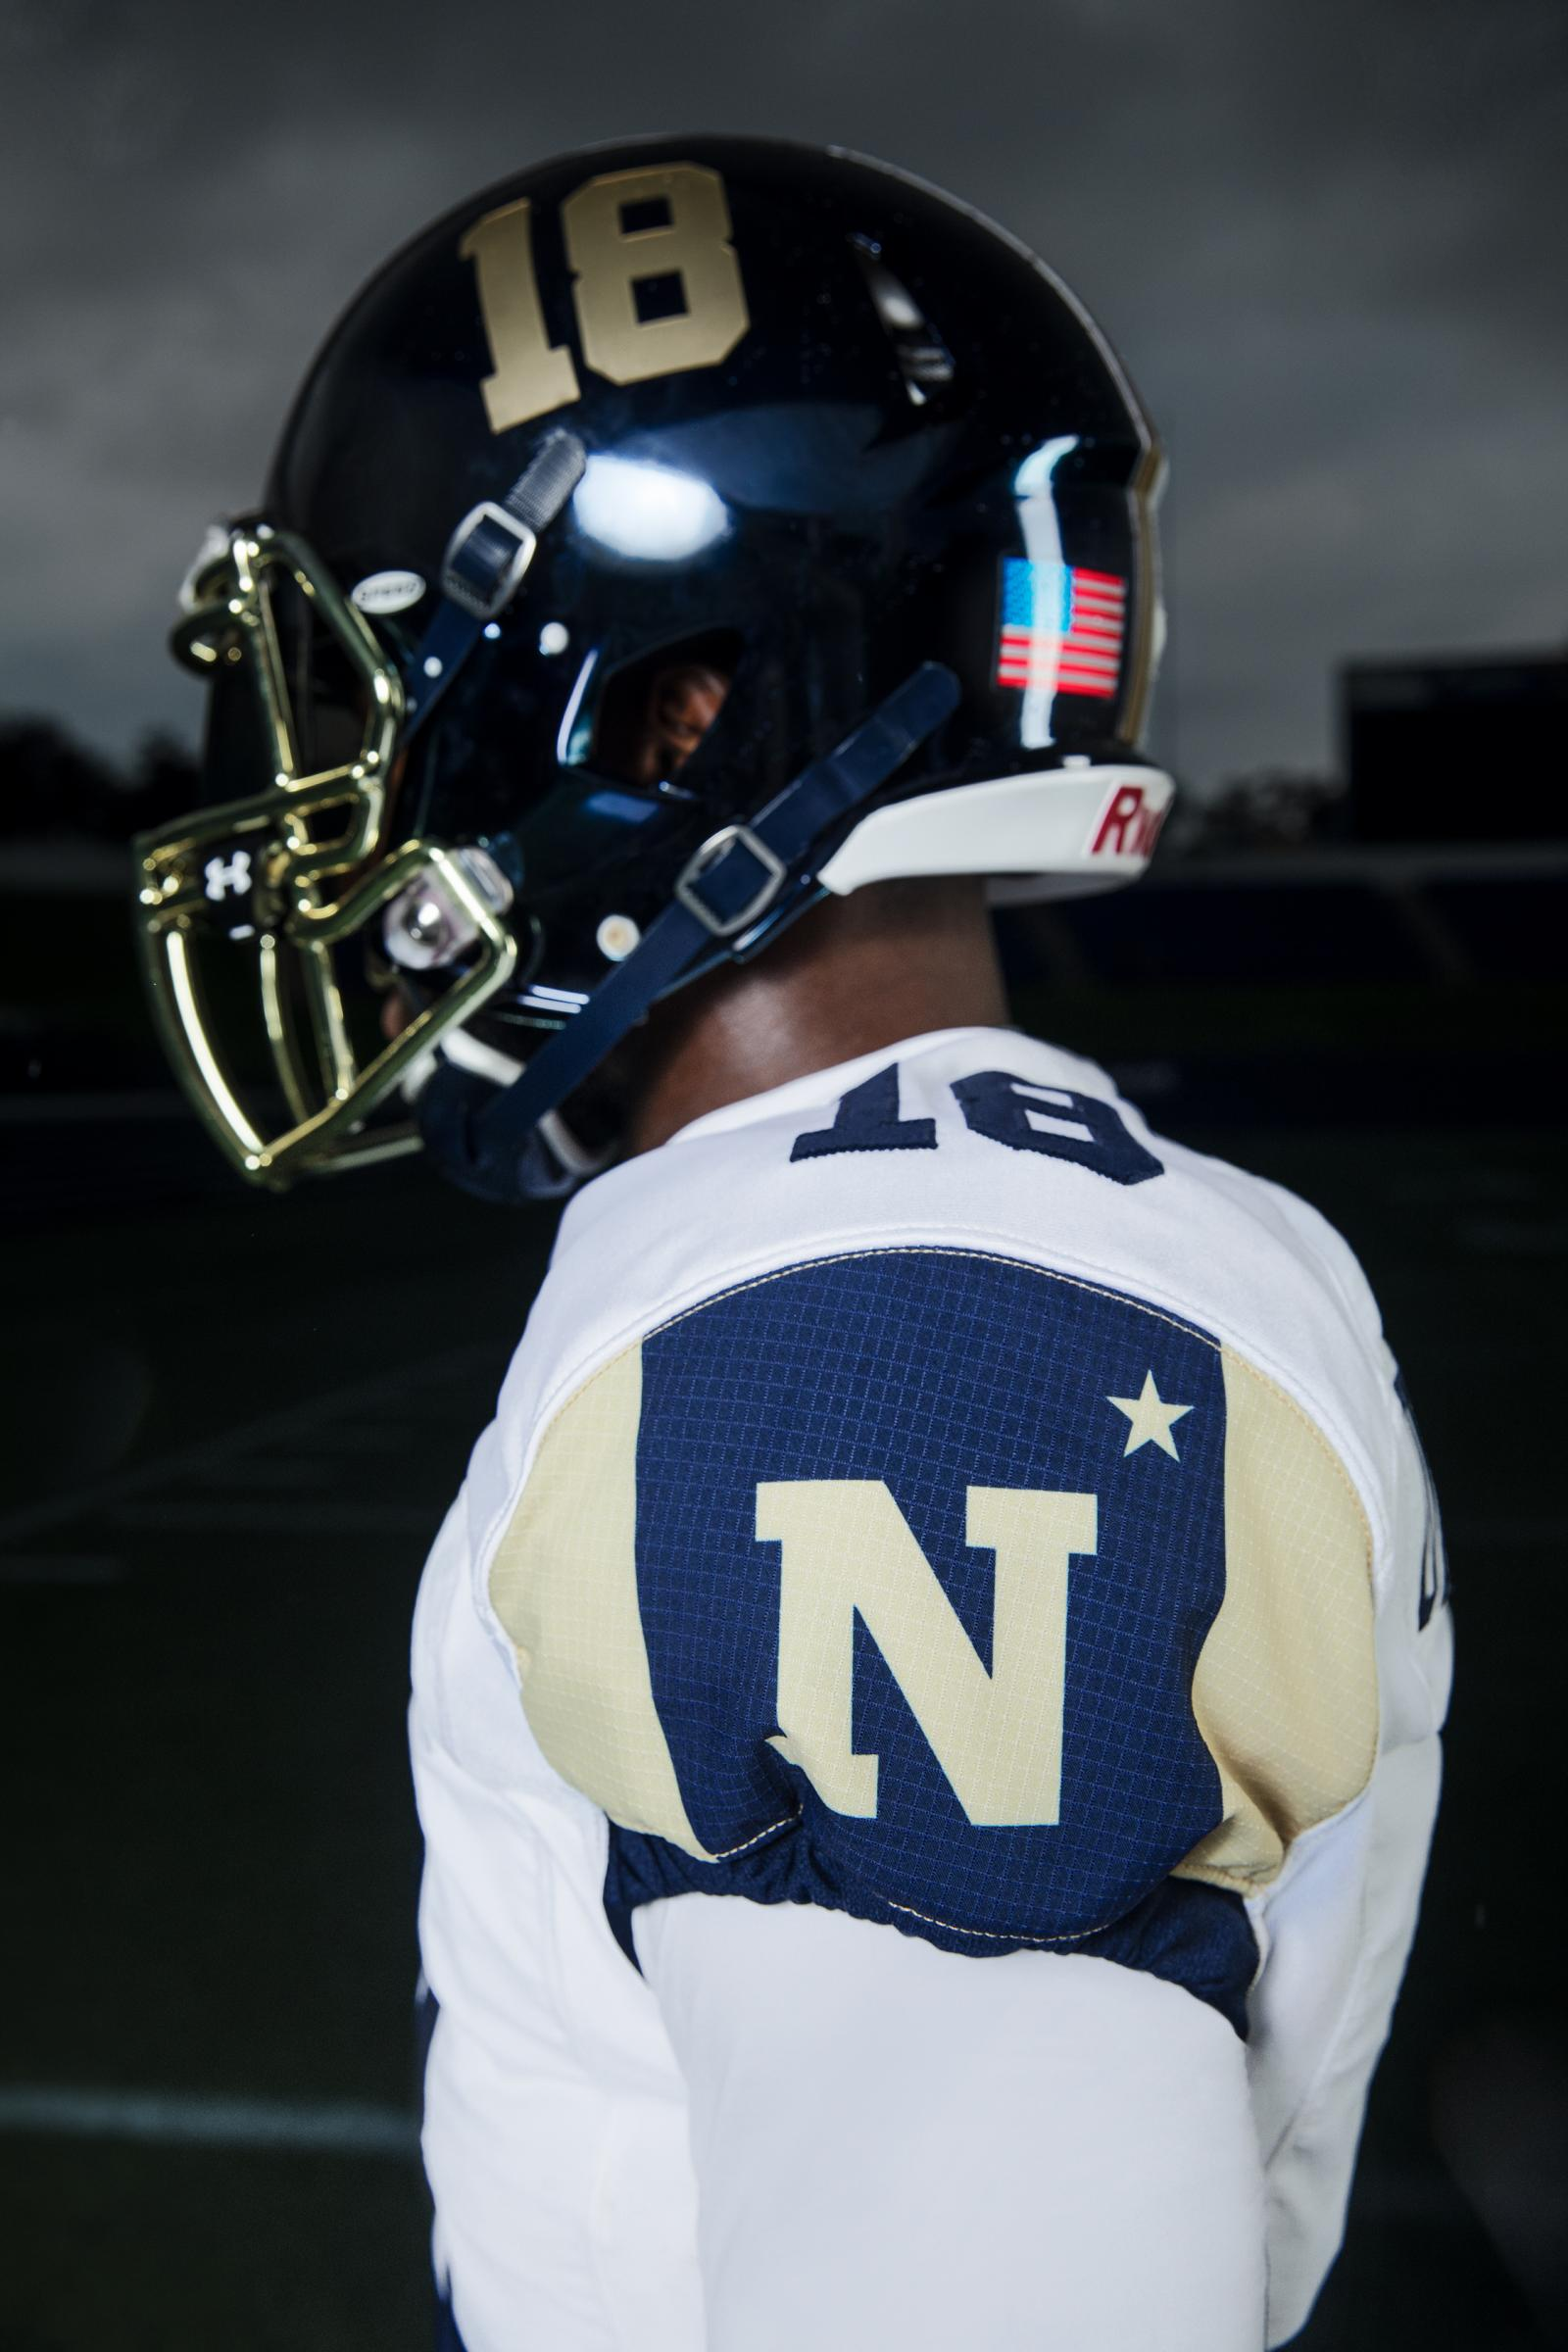 The sleeves of the jersey are navy blue in color and feature two stripes on the outside with the Navy logo in the center. This color-blocking look was inspired directly from the trim of the blanket popularly worn by Bill the Goat.   Bill the Goat is depicted on the sides of the helmet, charging forward and wrapped in its blanket.